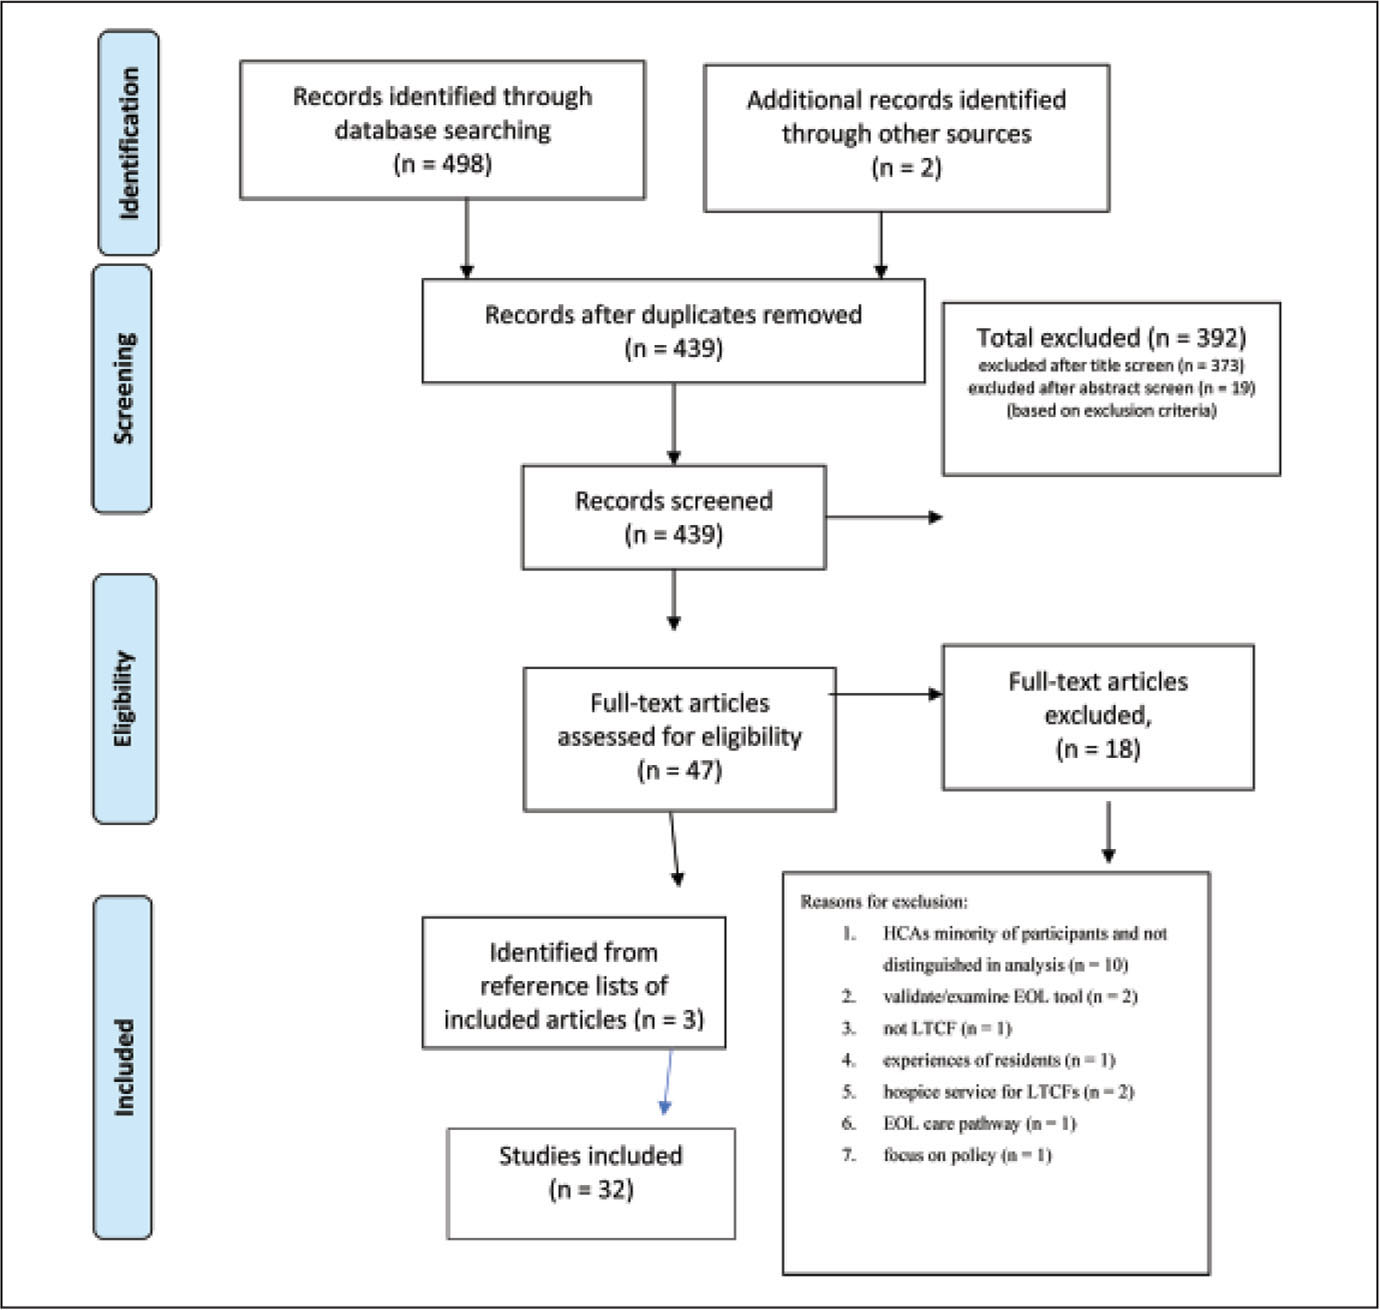 Process for selecting studies using PRISMA guidelines (Moher, Liberati, Tetzlaff, & Altman, 2009).Note. HCA = health care assistant; EOL = end of life; LTCF = long-term care facility.